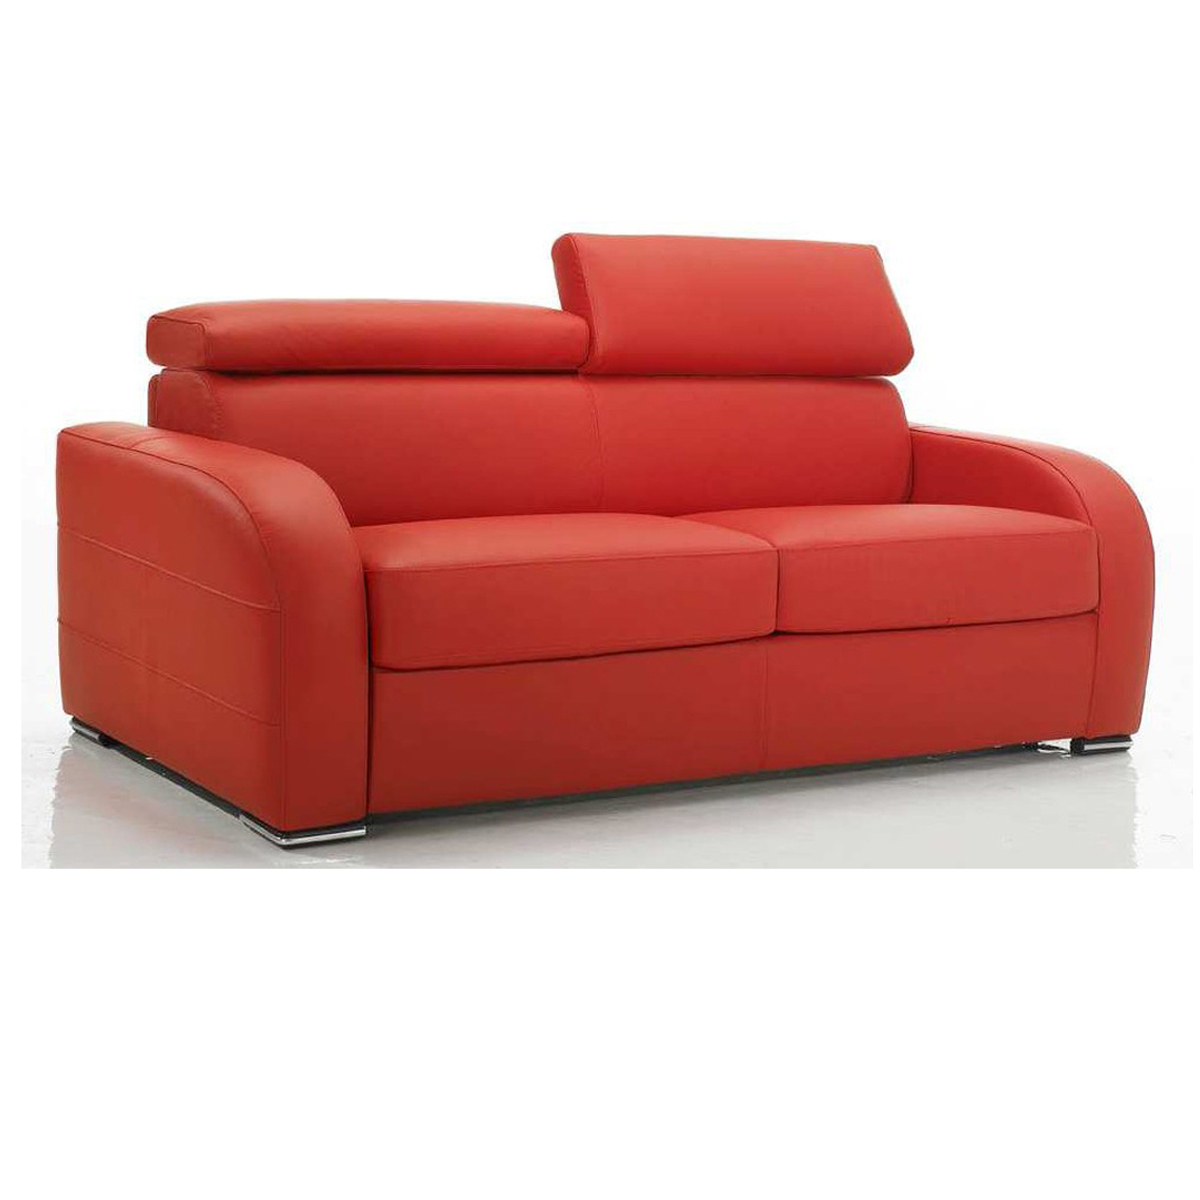 Canap convertible en stock royal sofa id e de canap - Meuble dos de canape ...